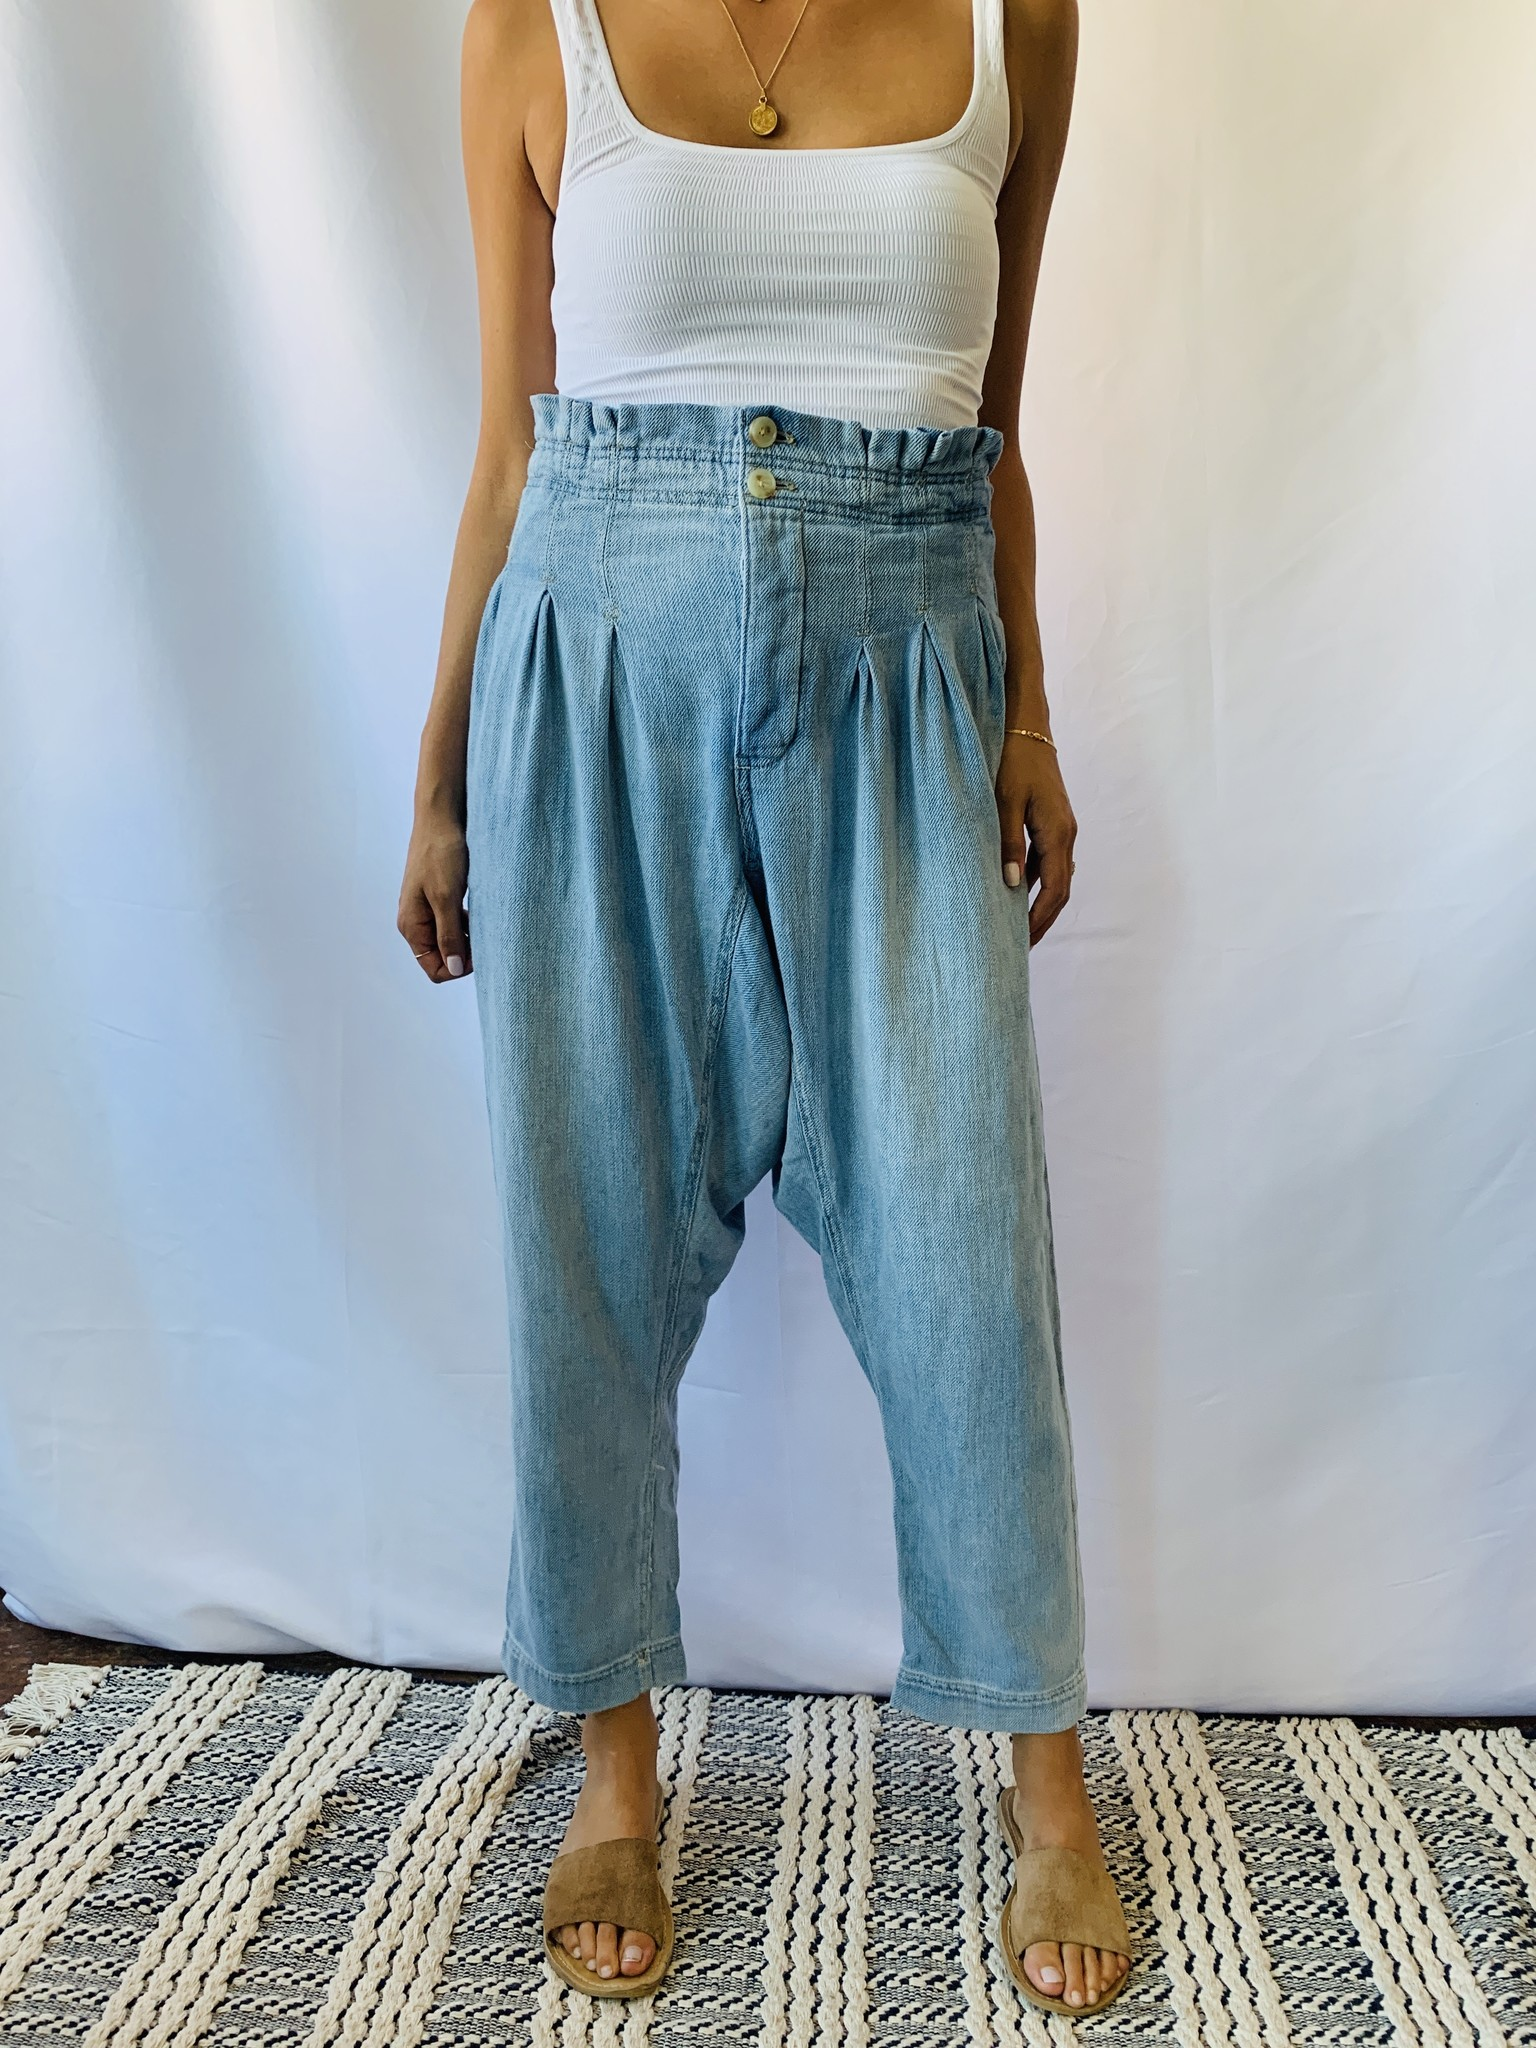 Free People Mover And Shaker Pant Mimi Amp Red Inc